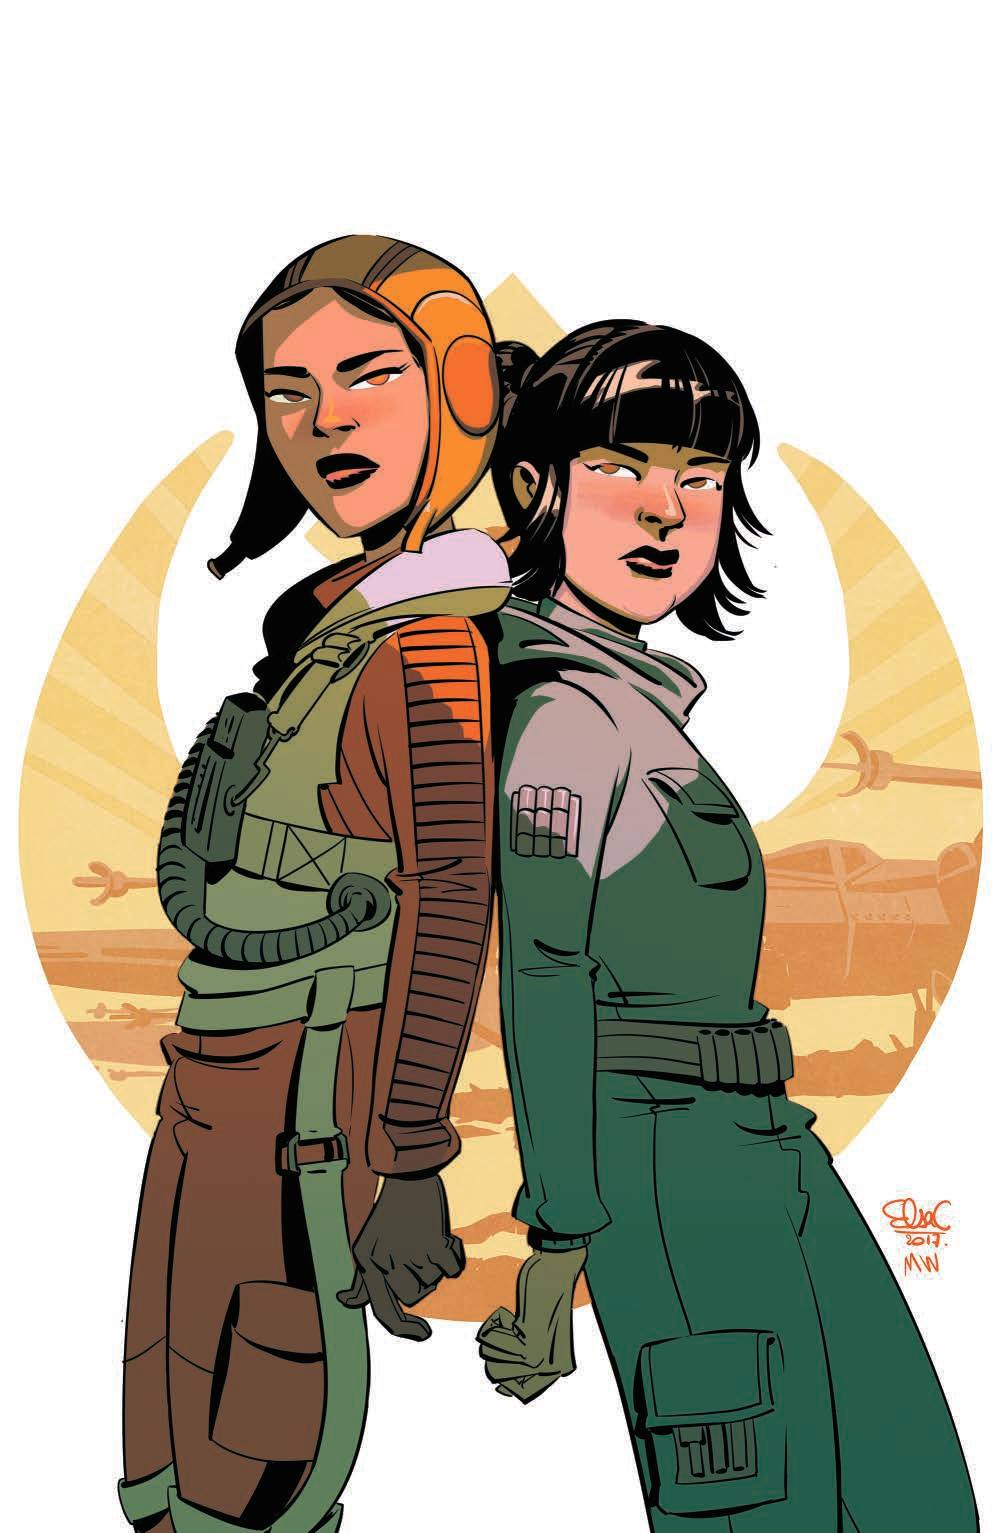 Star Wars Forces of Destiny: Rose & Paige - Wondercon Variant (Elsa Charretier)